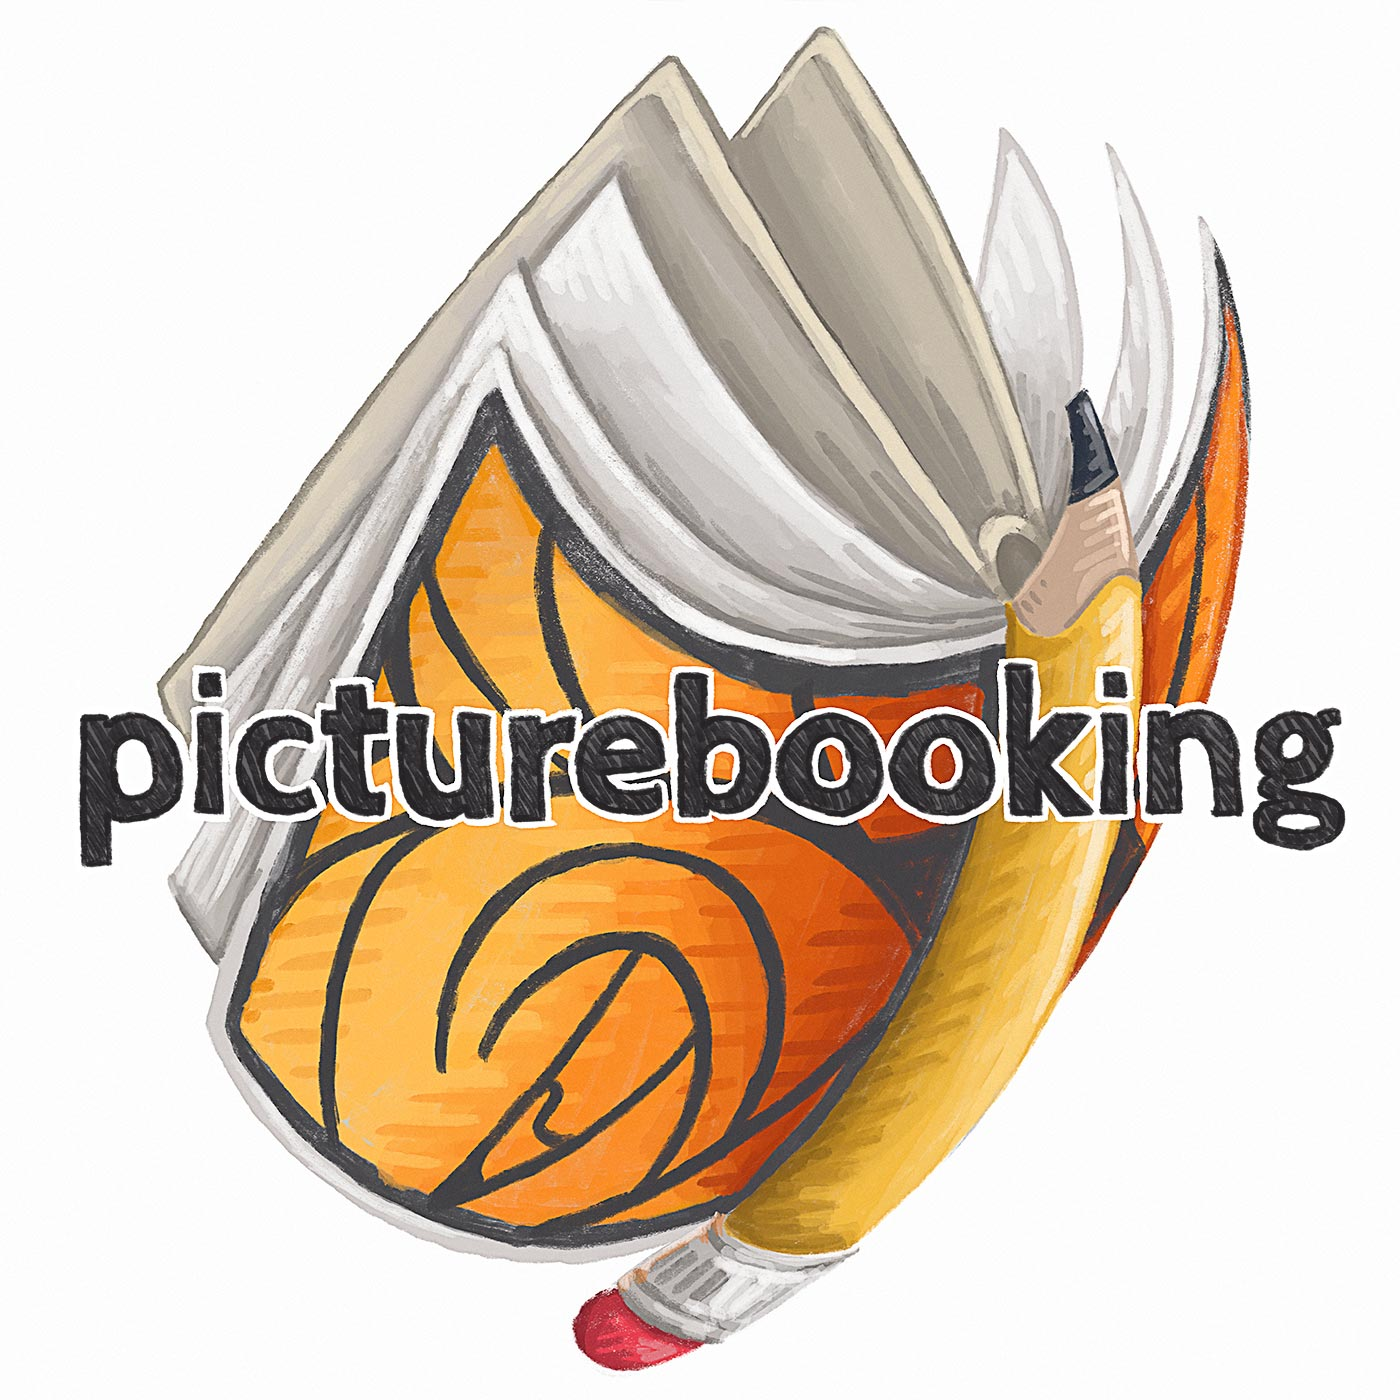 The Picturebooking Podcast: Creating, Publishing and Marketing Children's Picture Book Stories with Nick Patton